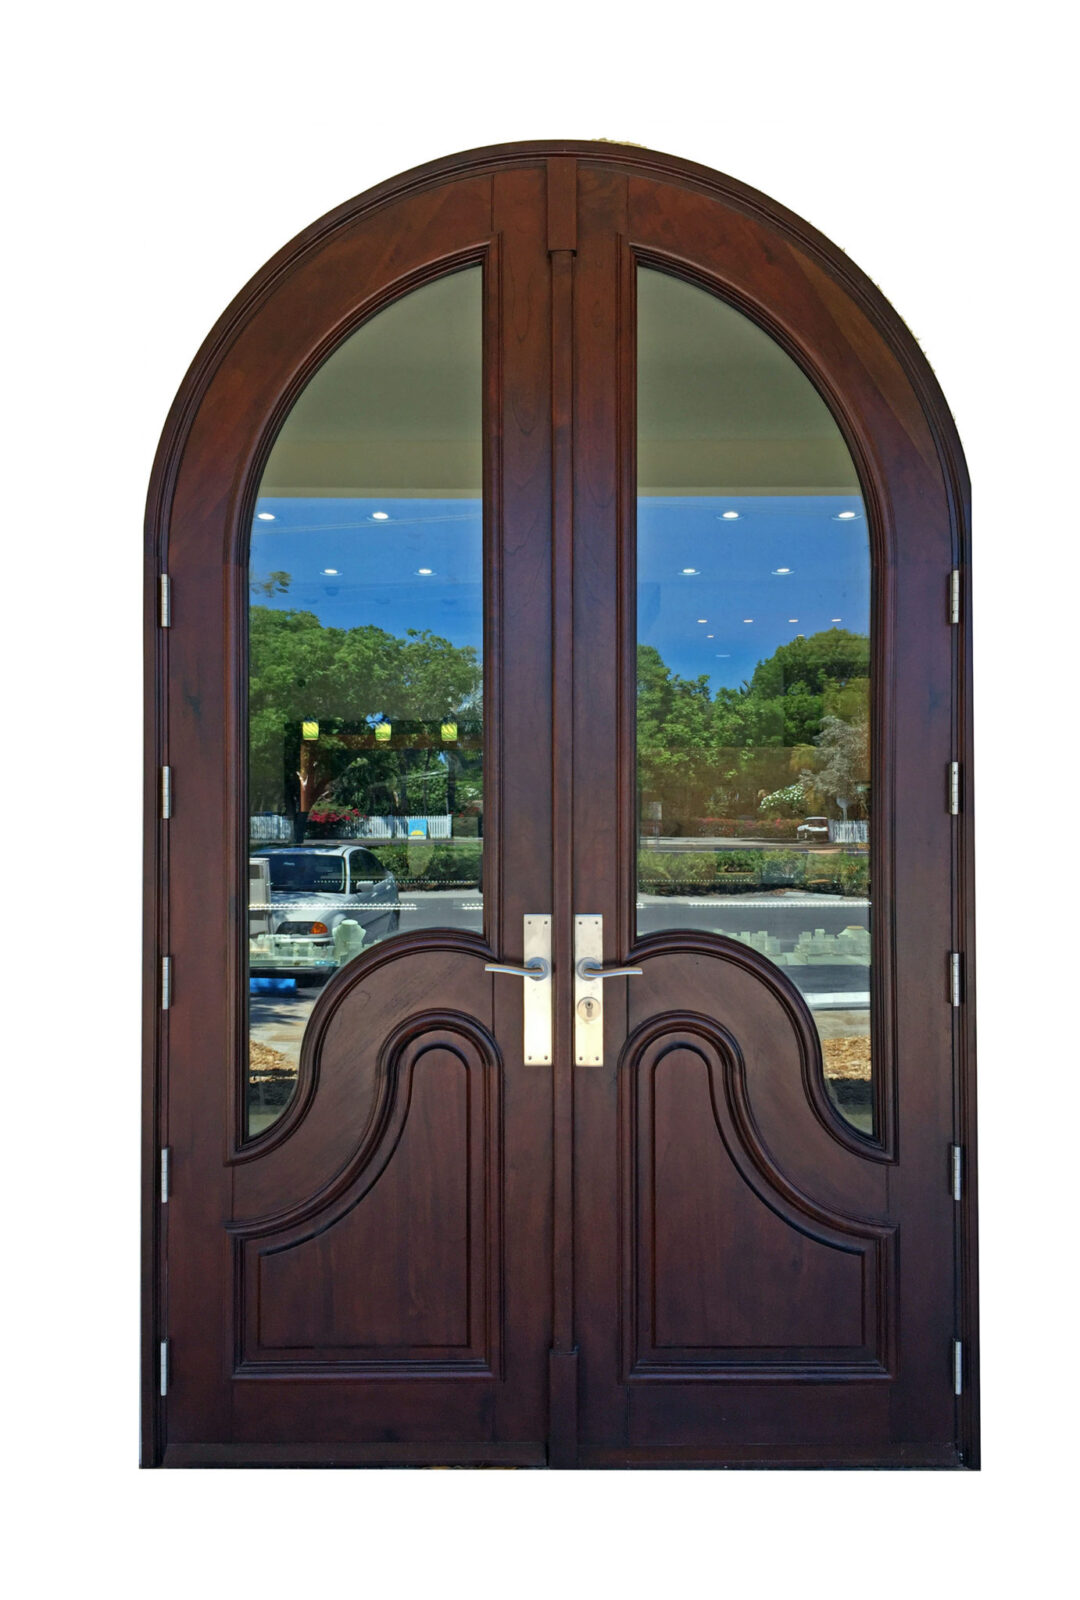 STAINLESS STEEL KEY COLONY BEACH. MAHOGANY ENTRY DOORS.MAHOGANYENTRYDOORS.